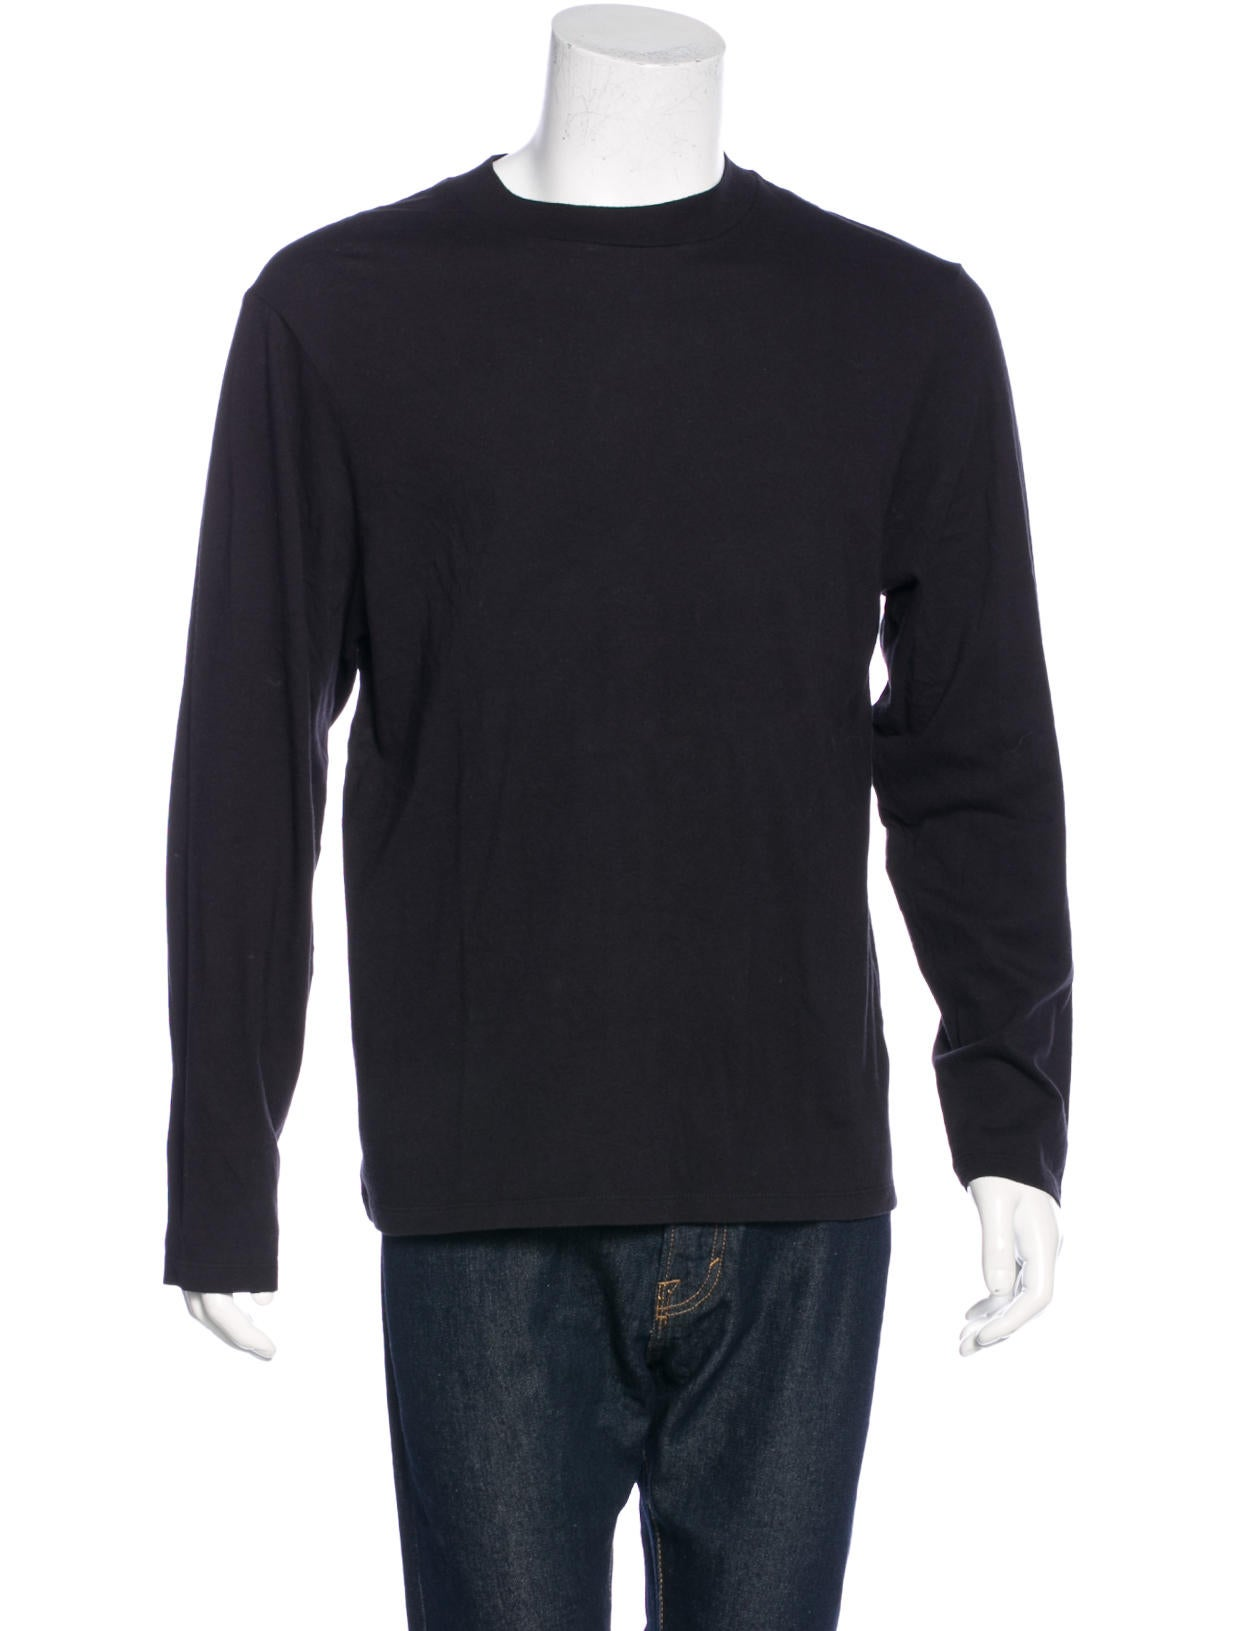 t by alexander wang long sleeve t shirt w tags clothing wtb31187 the realreal. Black Bedroom Furniture Sets. Home Design Ideas